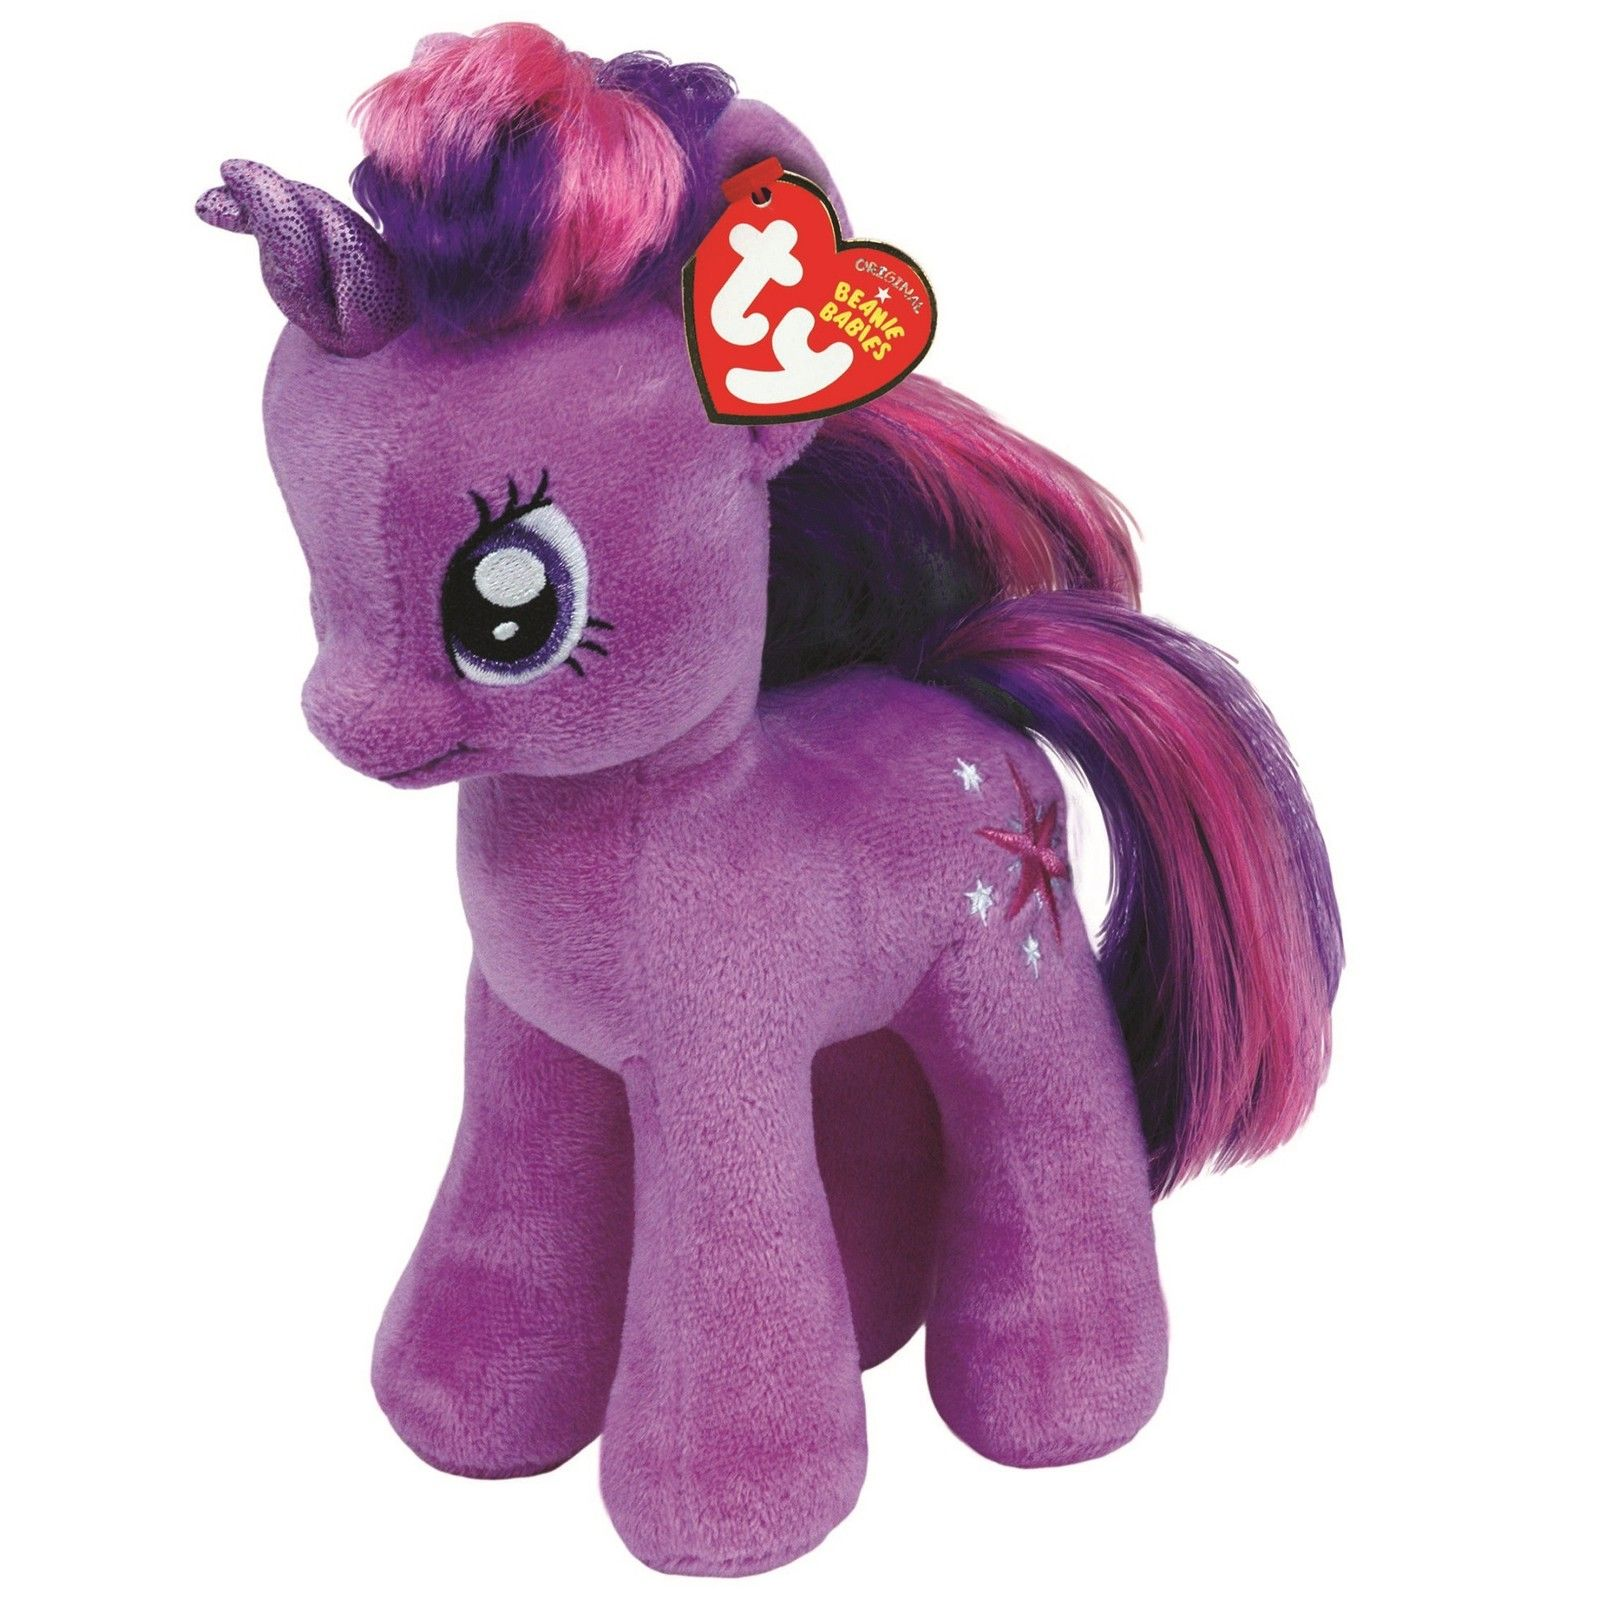 66143968bd7 £6.95 GBP - Ty Beanie Babies 41004 My Little Pony Twilight Sparkle Horse   ebay  Collectibles